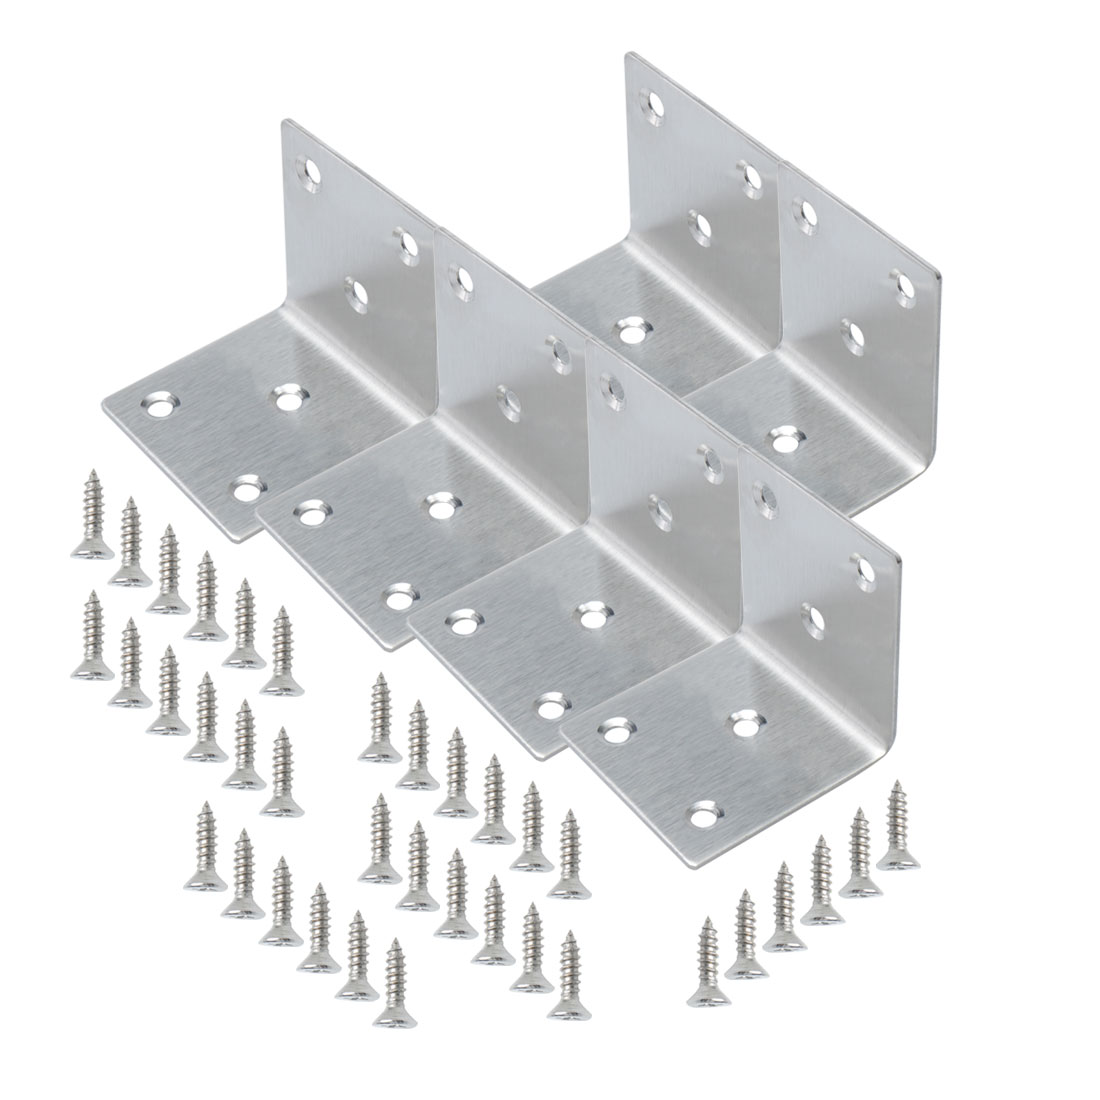 Angle Bracket Stainless Steel Brace Connection Fastener w Screw 50x50mm, 6pcs